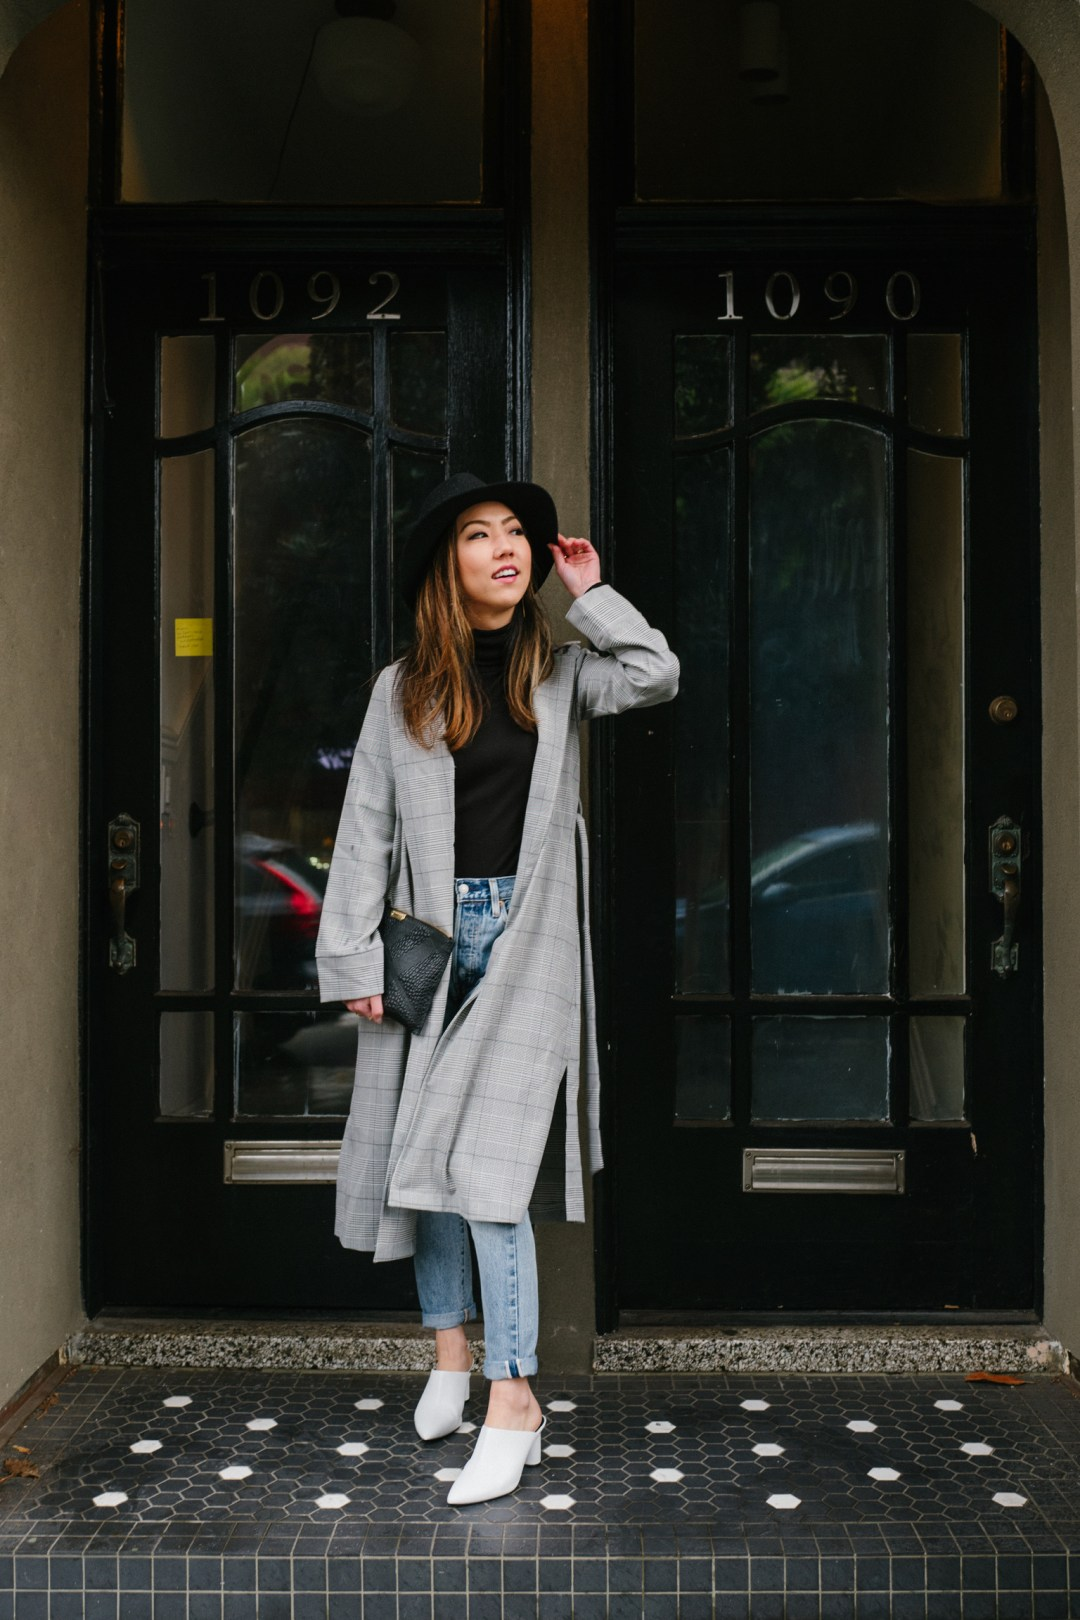 58509bfbacf0 If there's one trend worth buying this year, it's a plaid jacket or coat. I  was initially skeptical about this trend since I felt like plaid was too  preppy ...